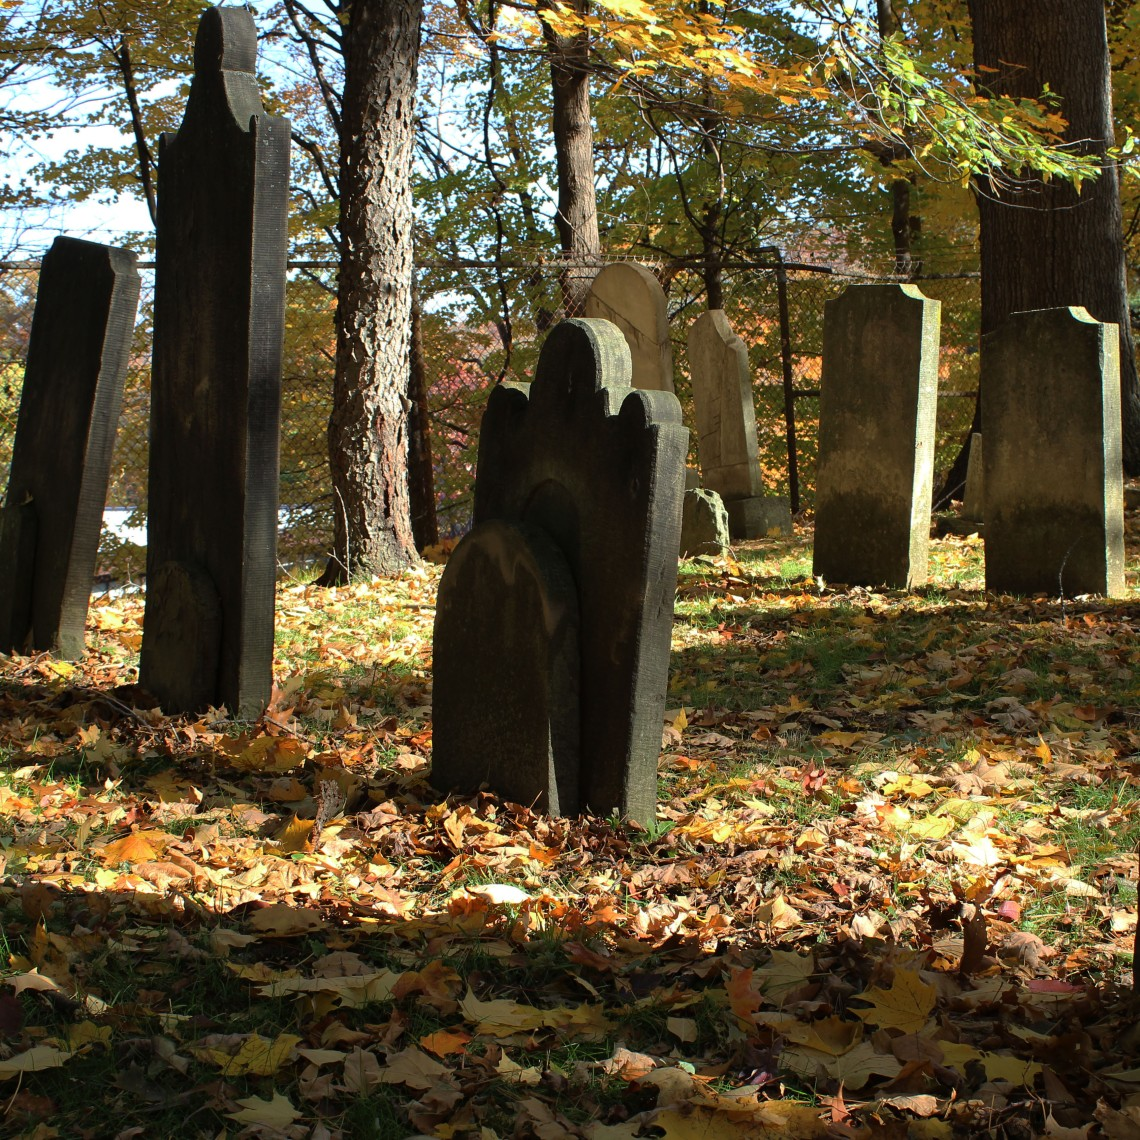 Binkley 1803 Cemetery, Hamilton (Ont). Photo by @erskinec